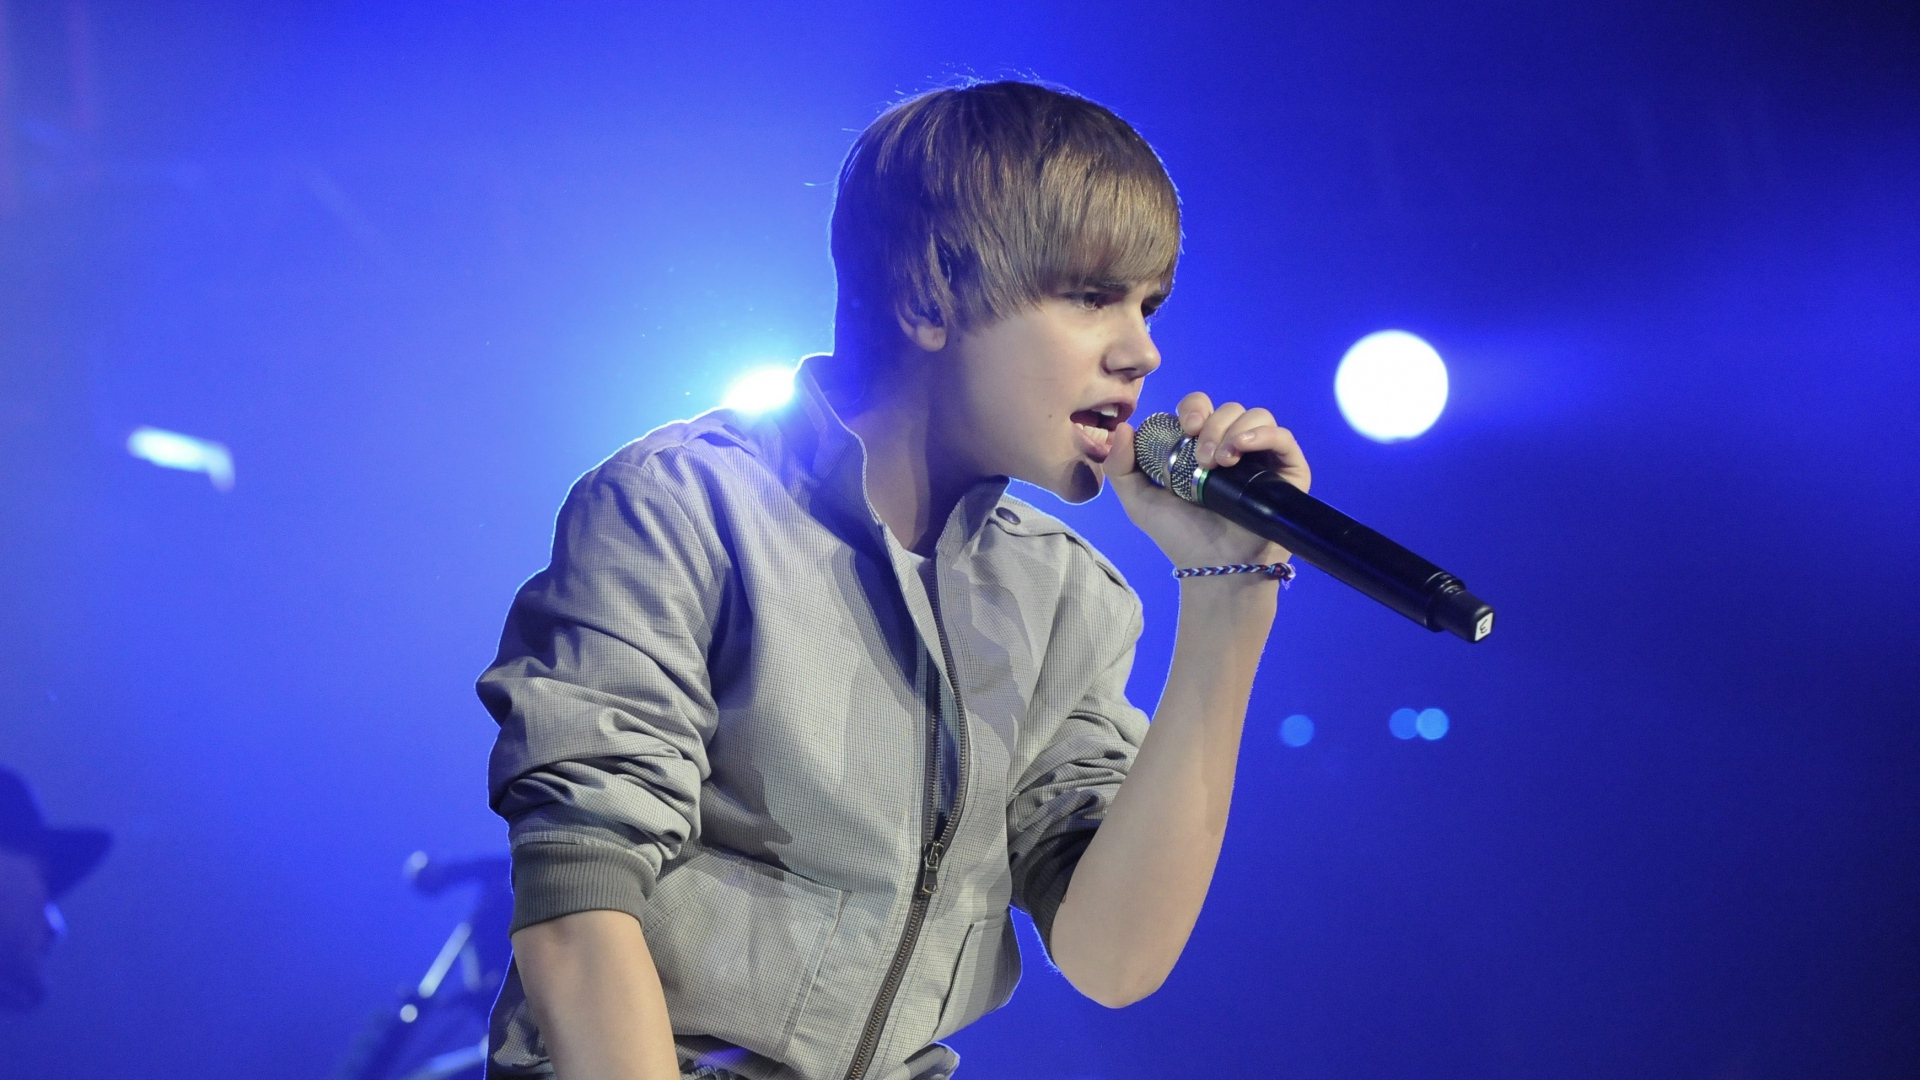 justin biebers concert wallpaers image collections